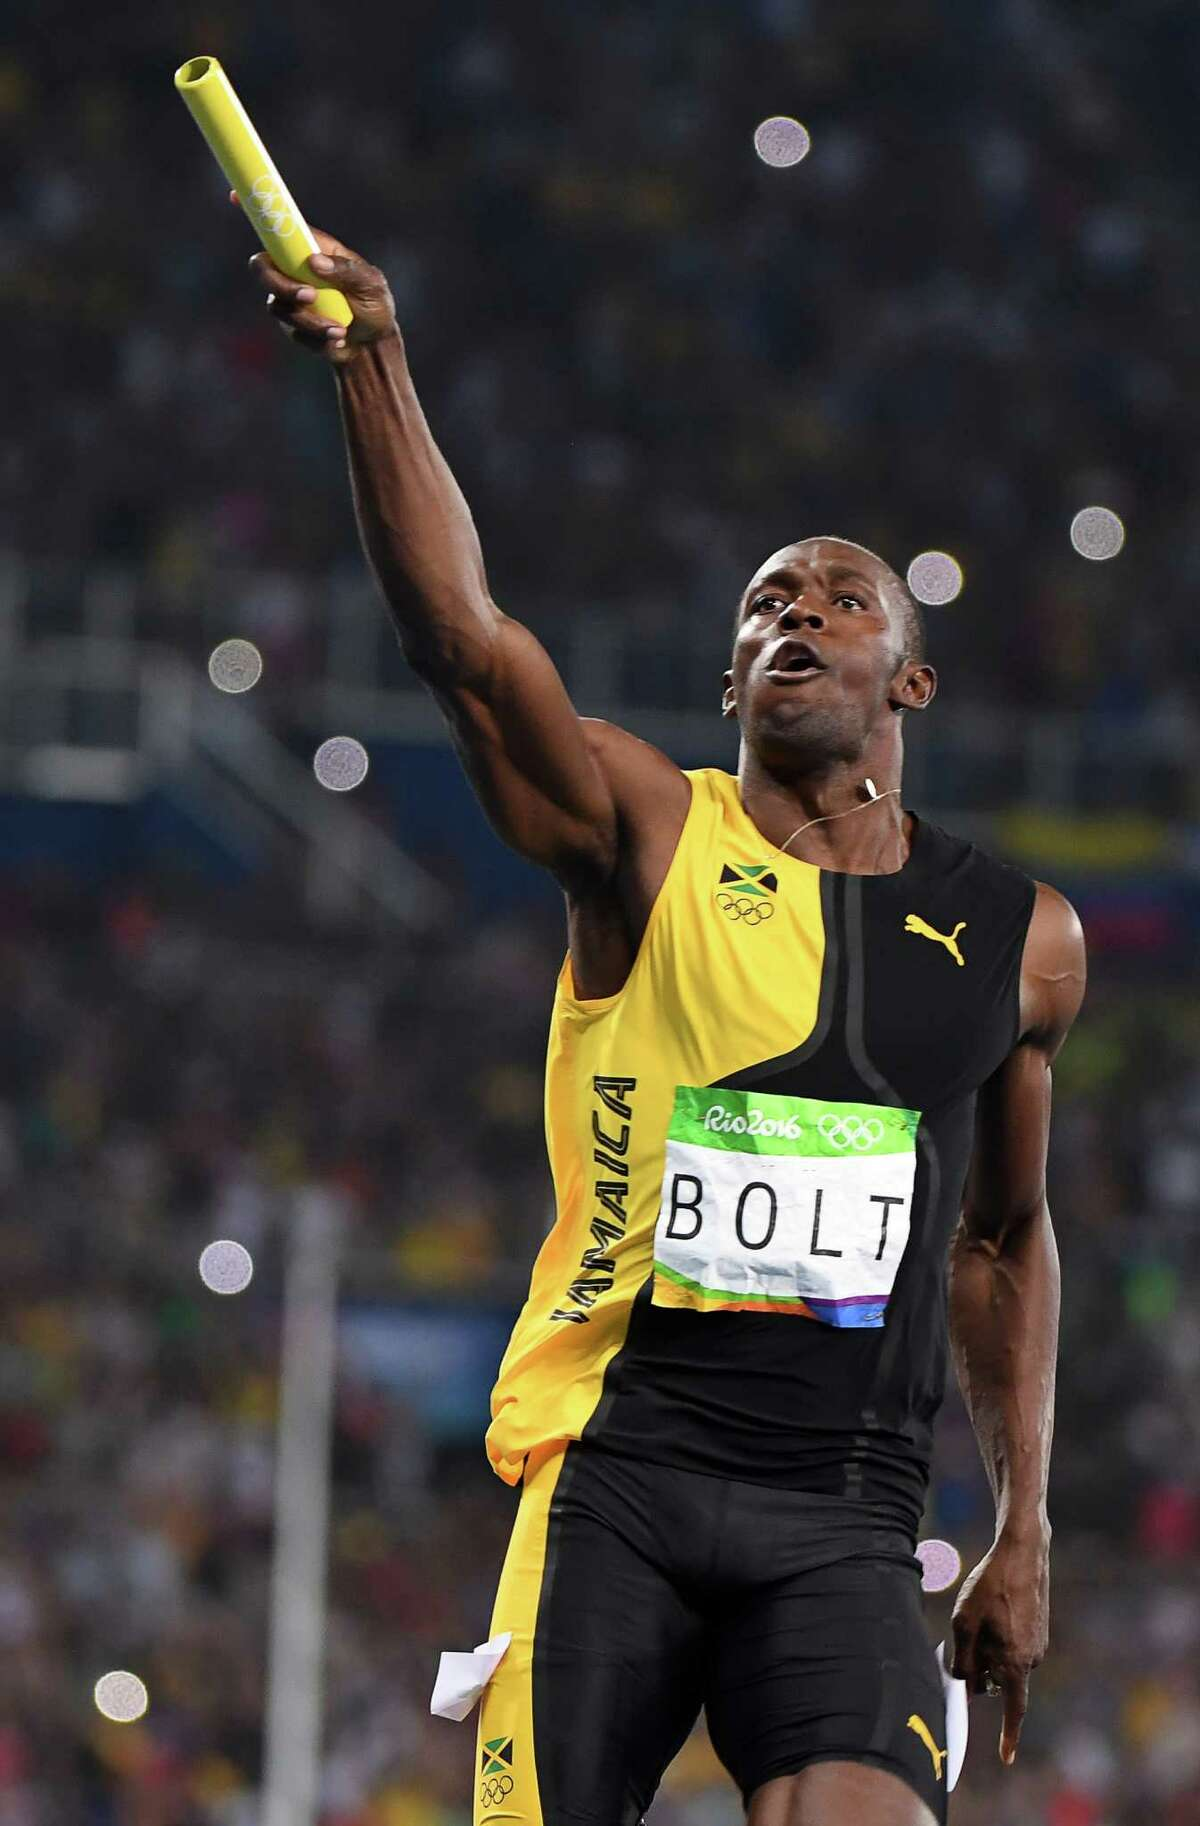 Usain Bolt completes his historic golden triple-triple by anchoring the Jamaican team to victory in the 400-meter relay Friday night at Olympic Stadium in Rio de Janeiro.